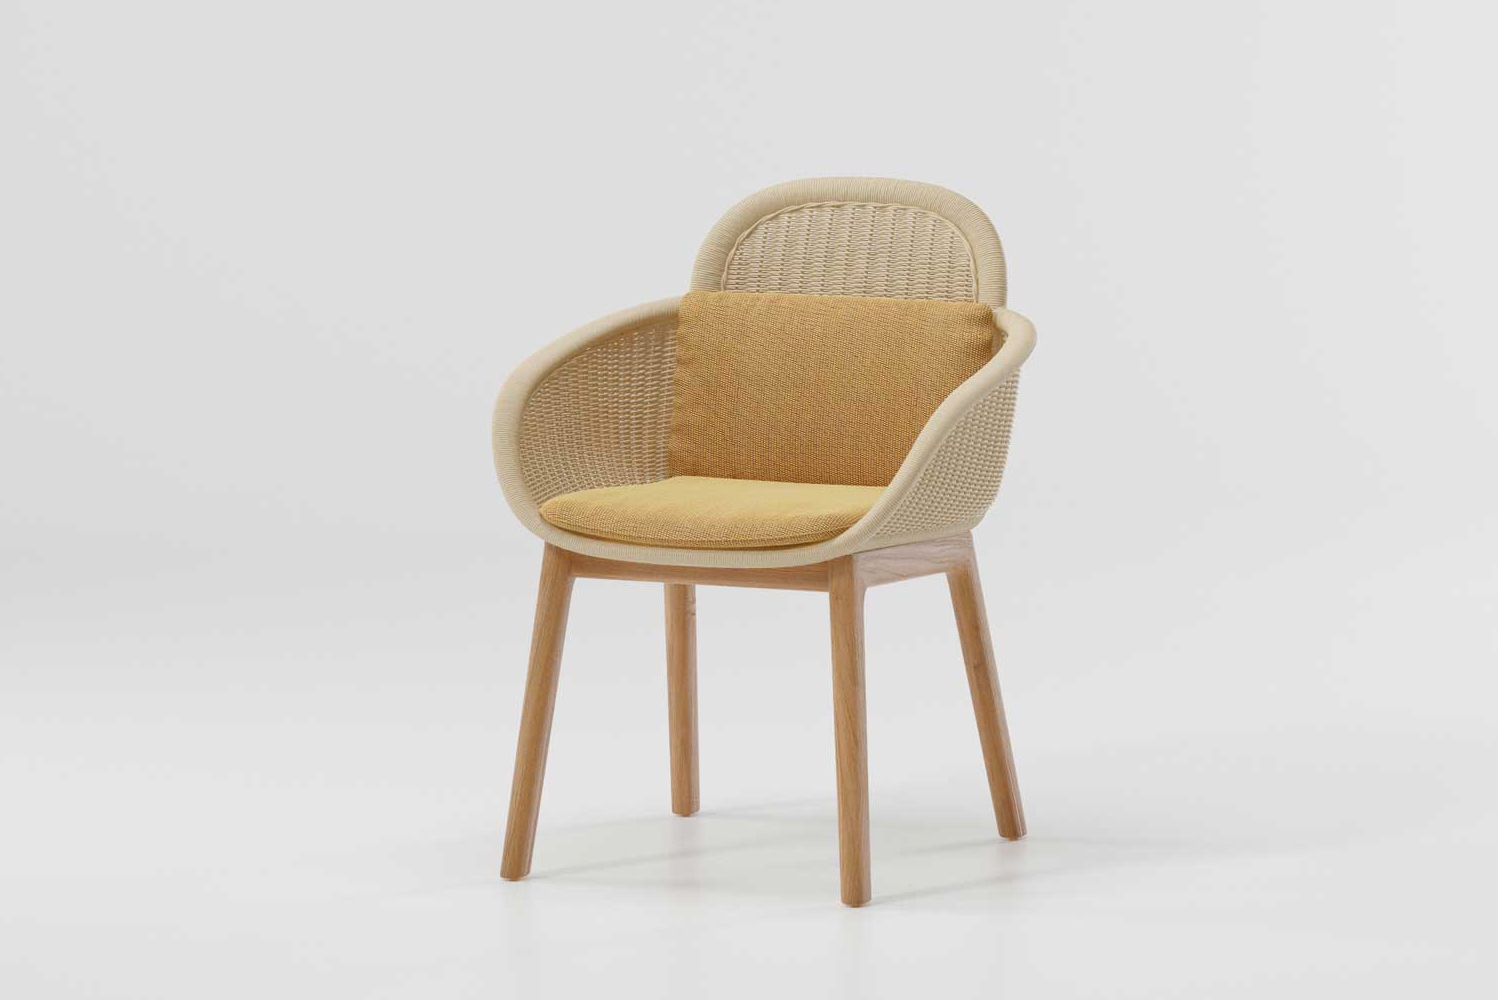 The chairs have a modernist spirit punctuated by cushions inspired by colors plucked from nature.